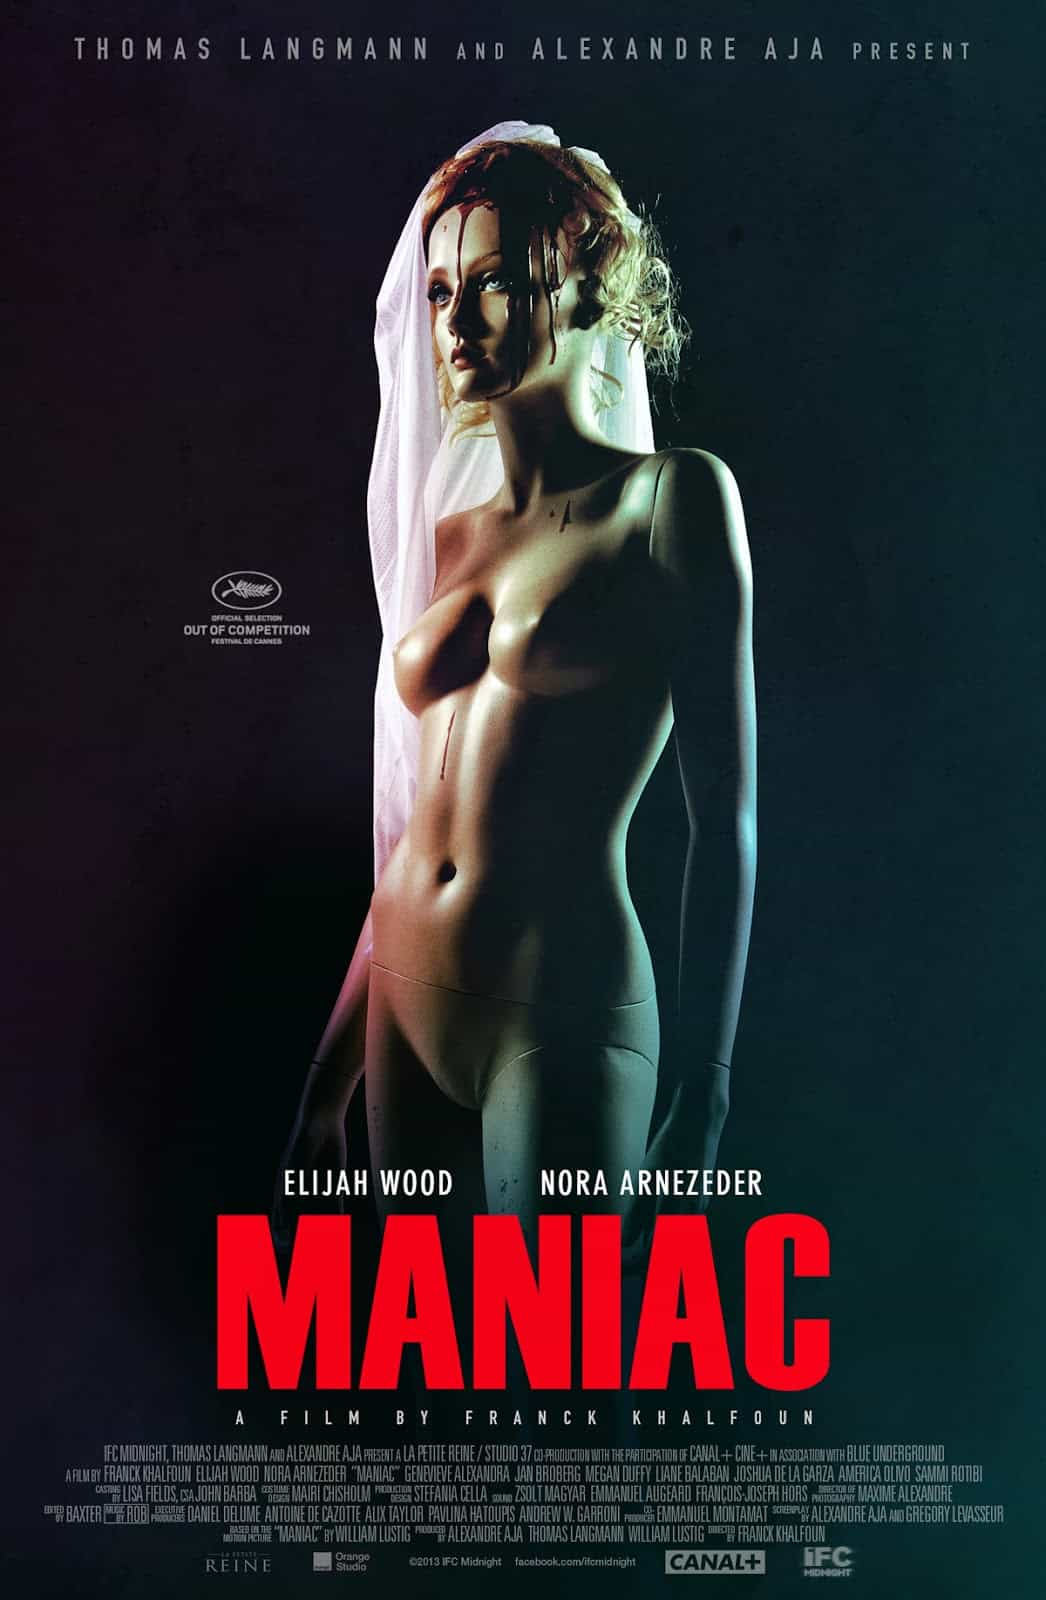 Mike's Review: Maniac (2012)